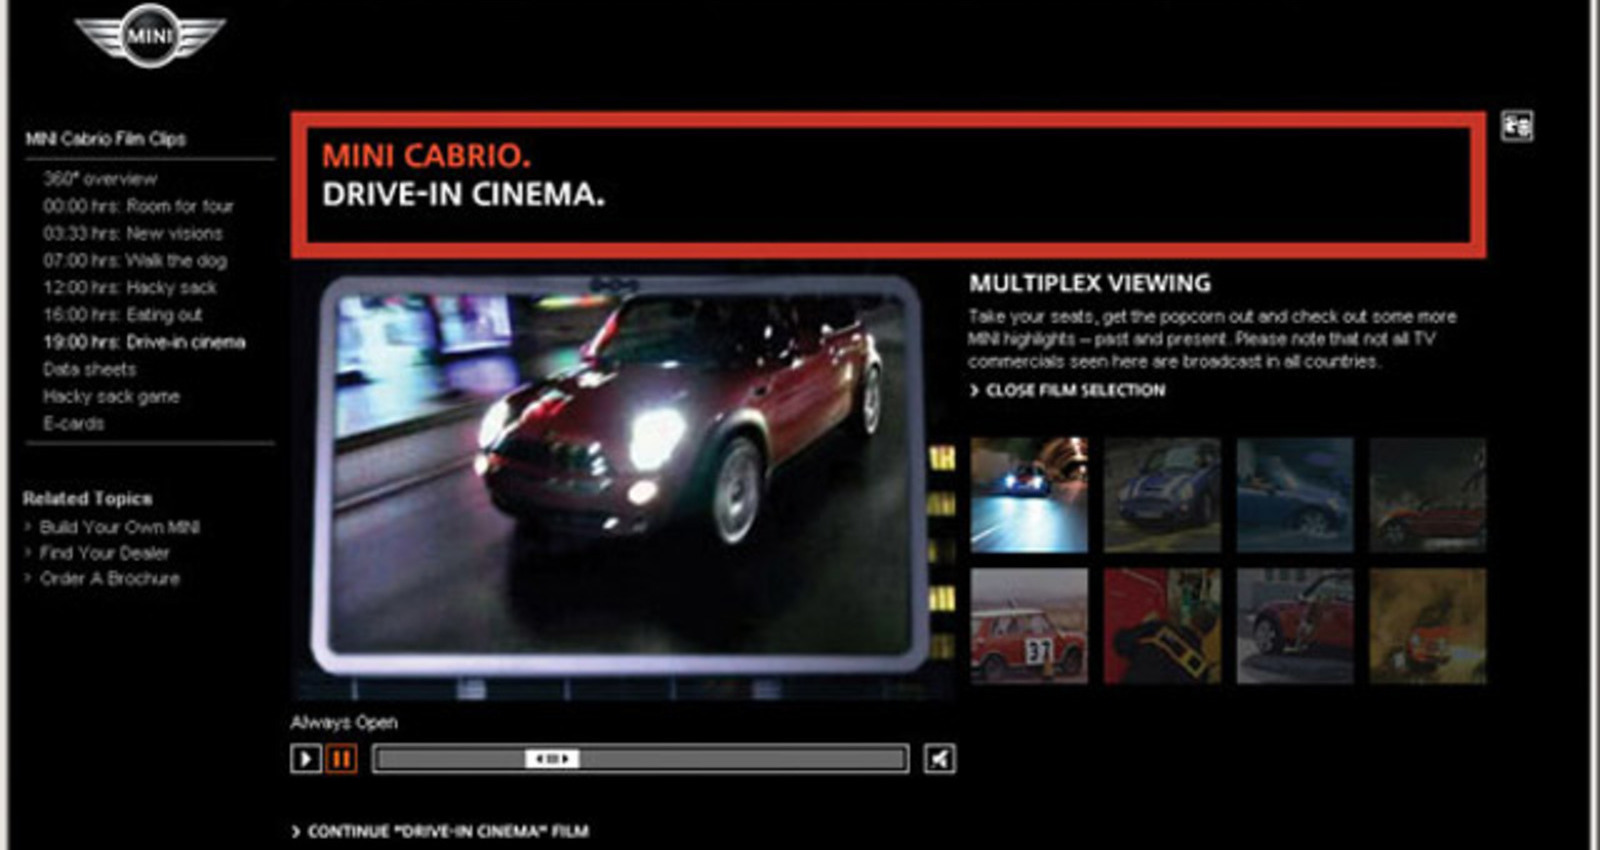 MINI Cabrio Film Clips